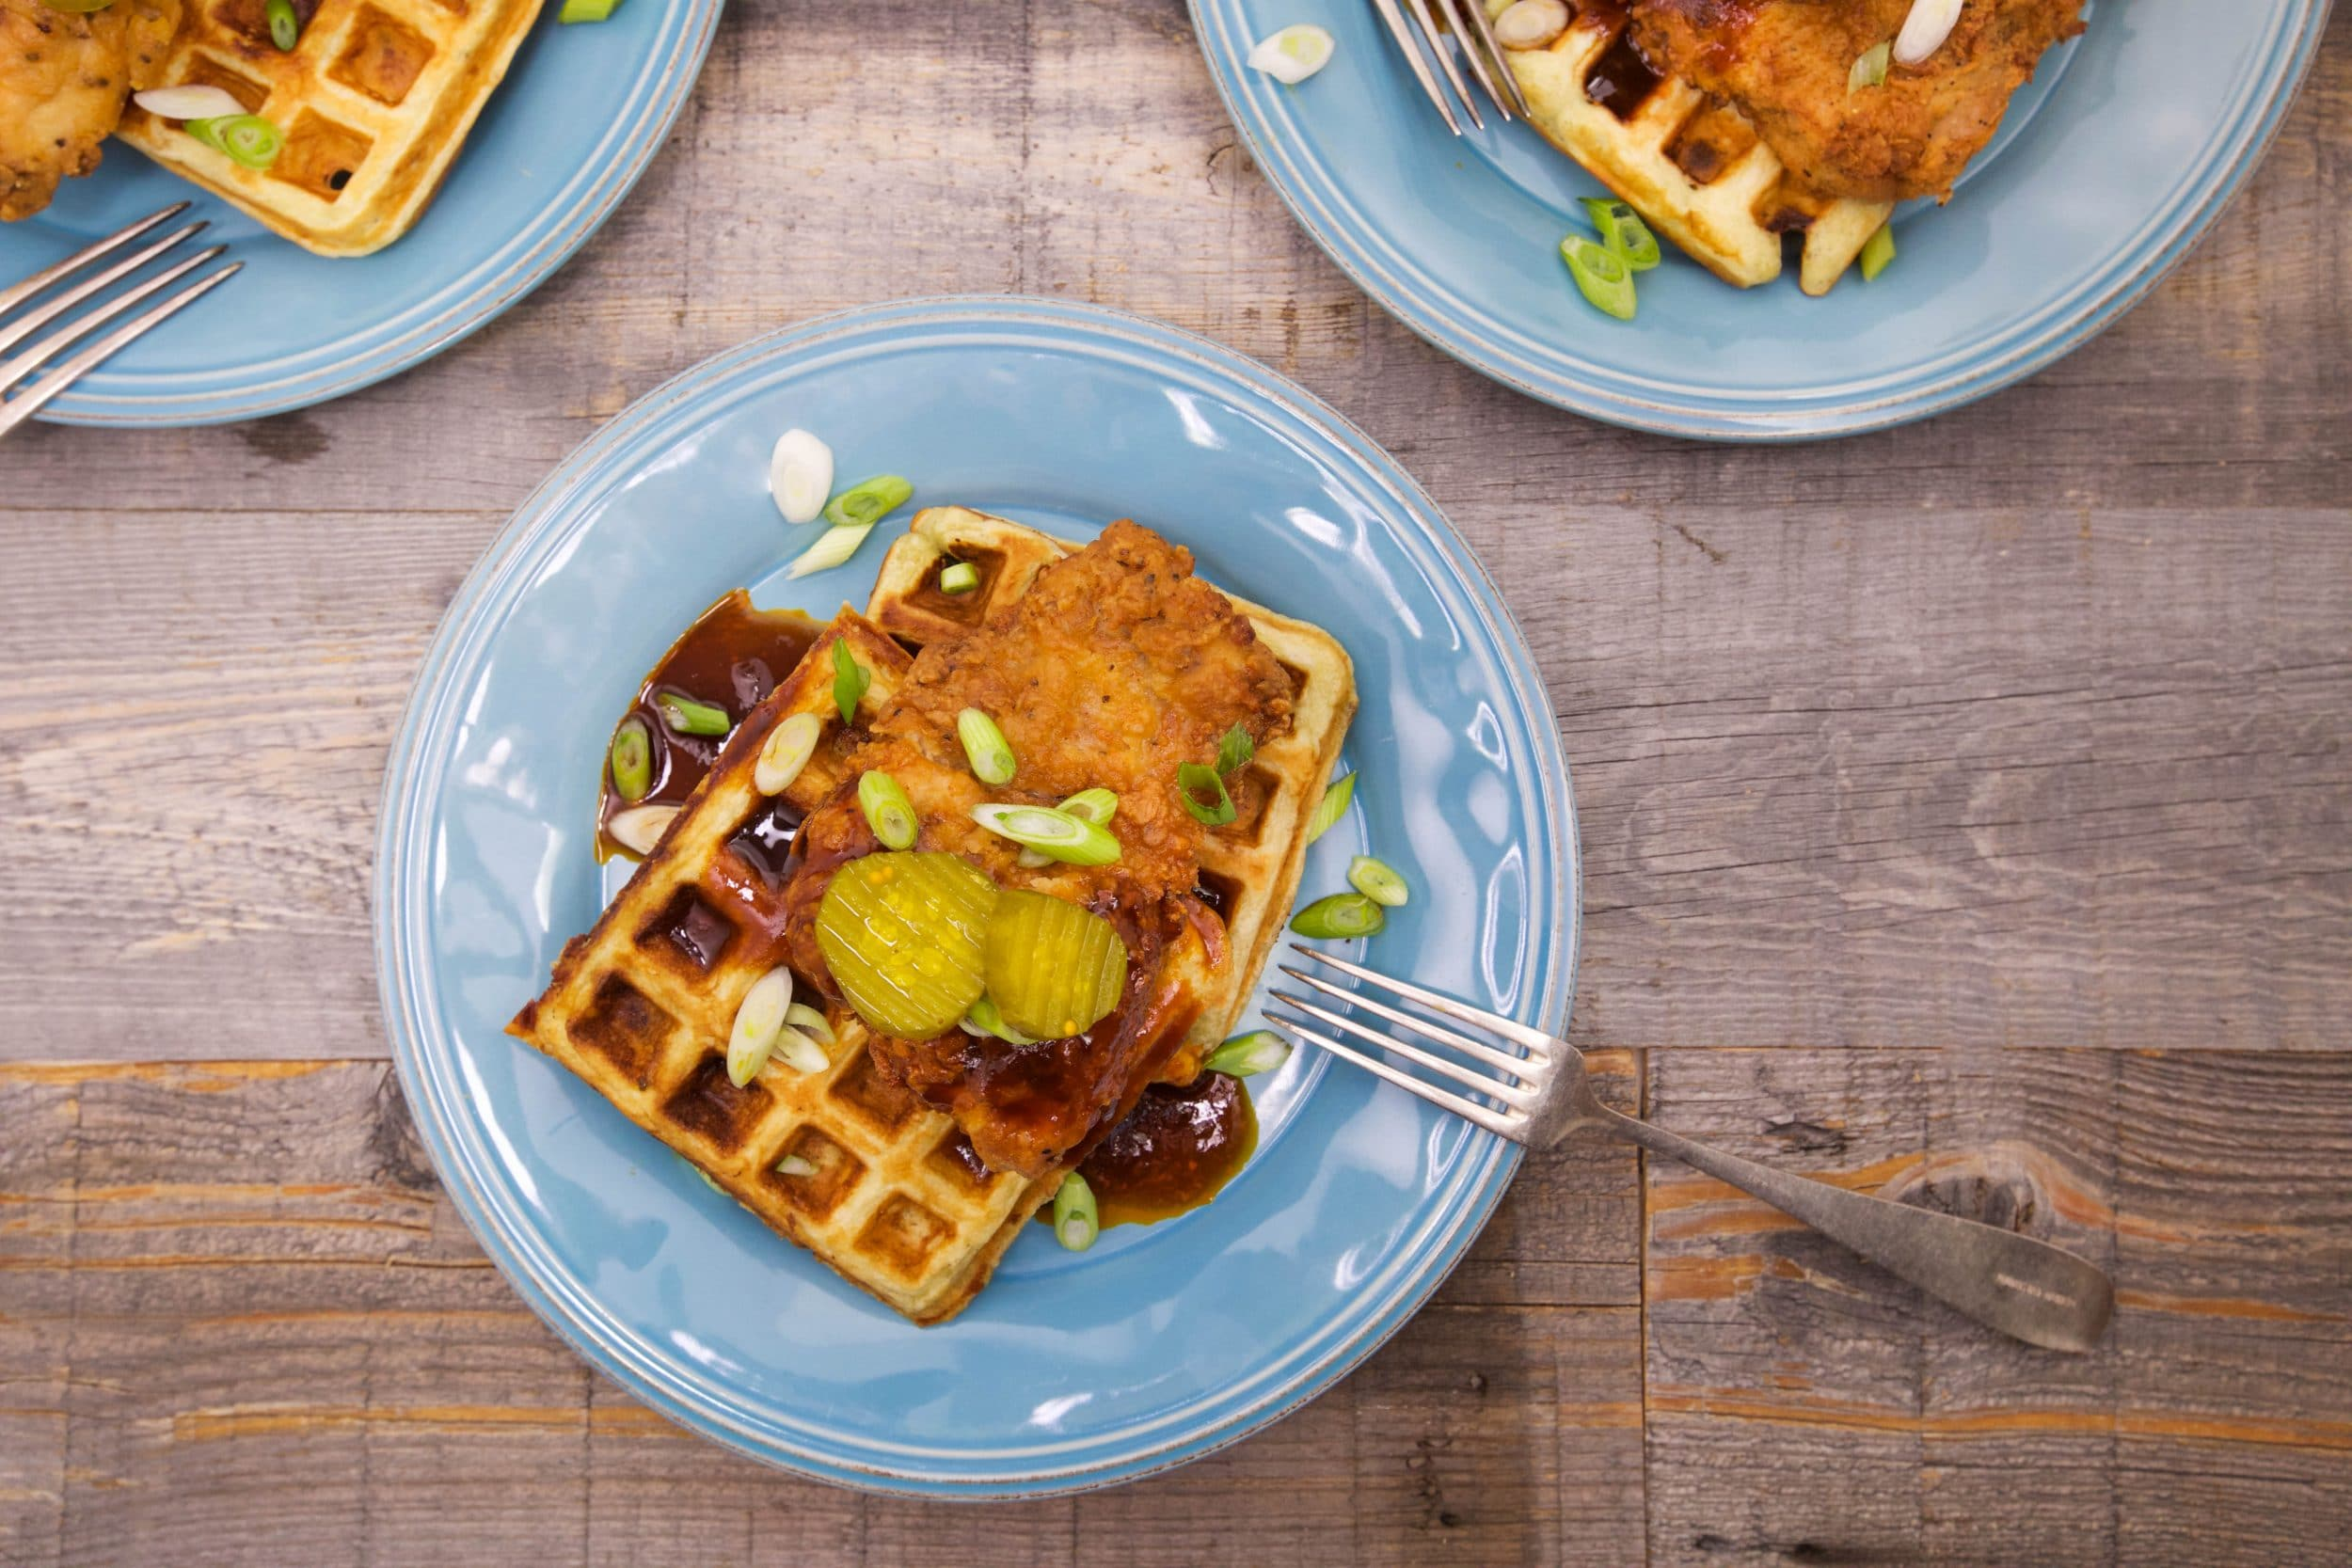 Buttermilk-and-Blue Waffles with Buffalo Whiskey Crispy Chicken